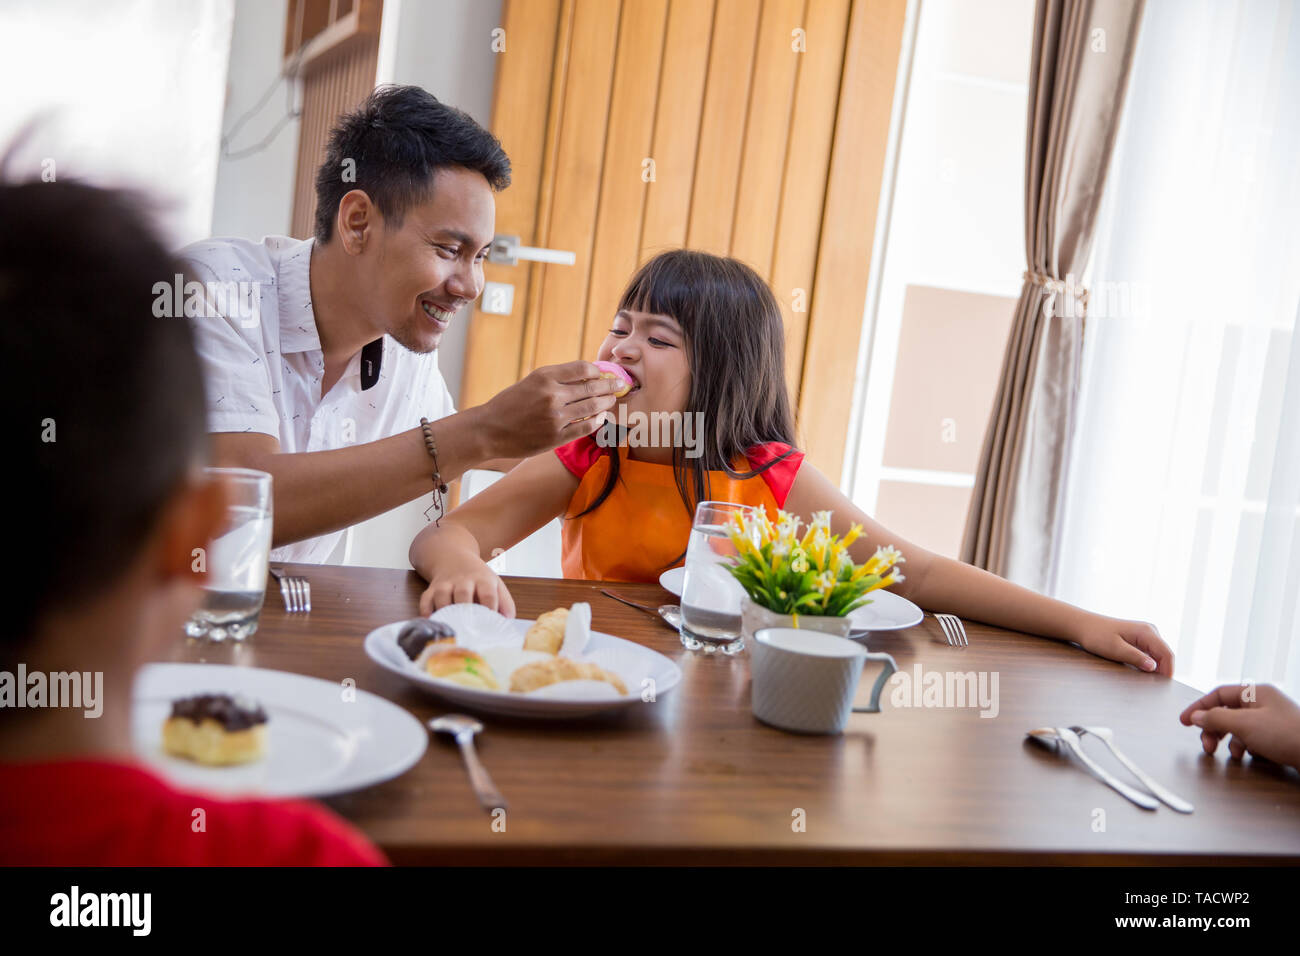 father feed daughter during family breakfast at home - Stock Image